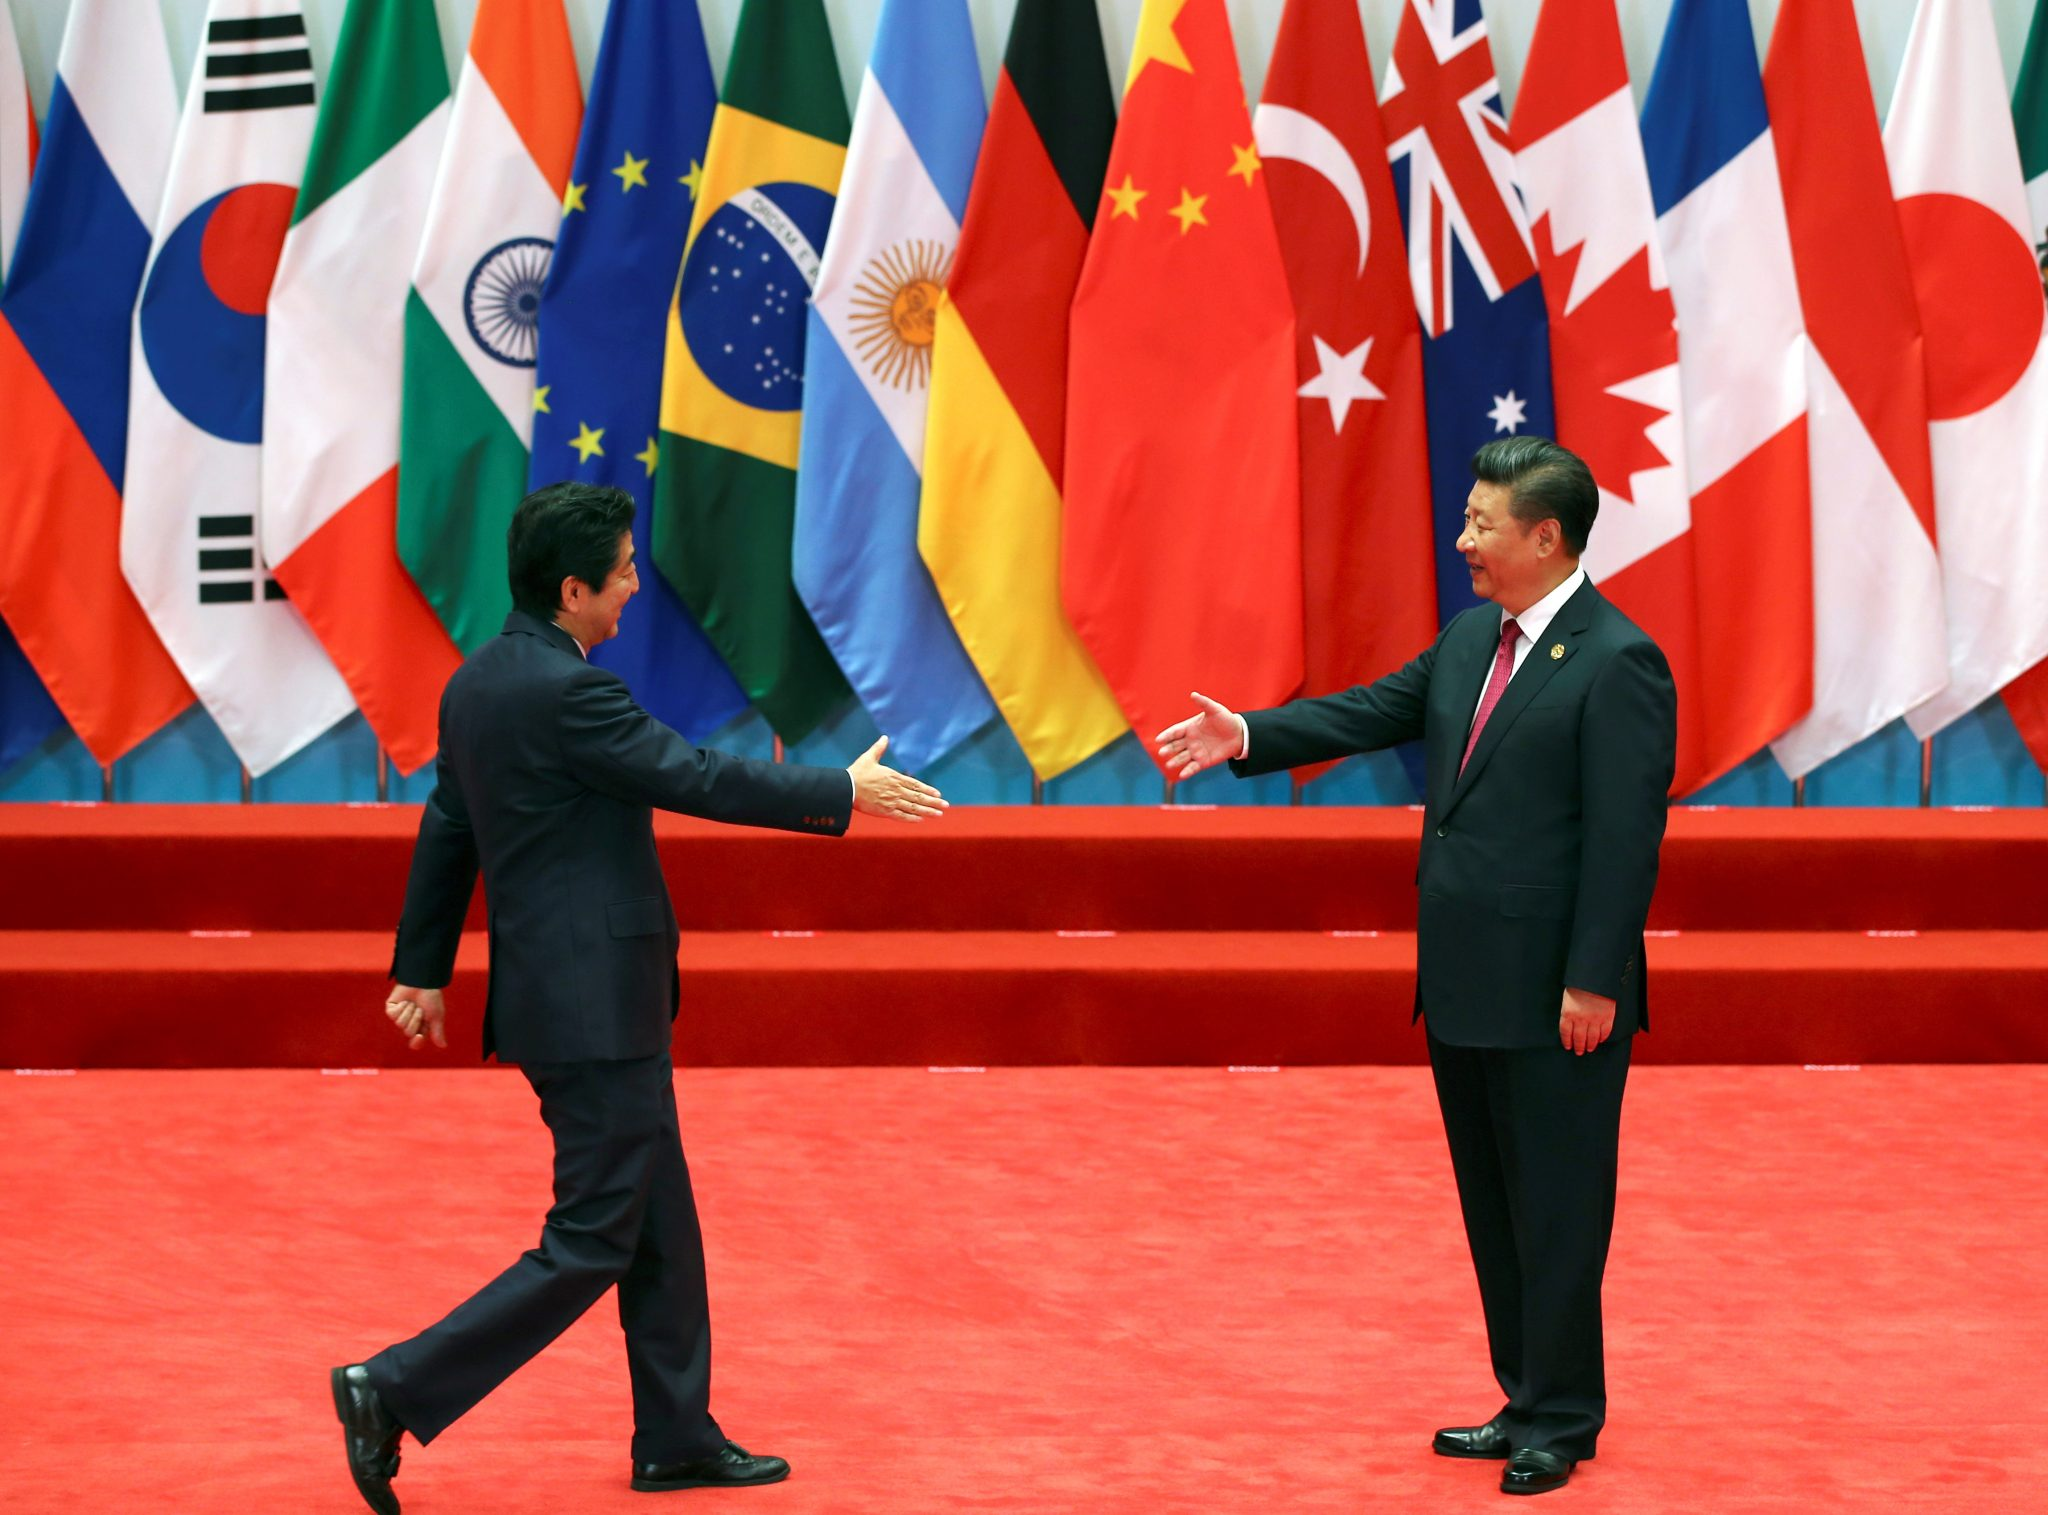 Japan opens the way to cooperation on China's Belt and Road Initiative